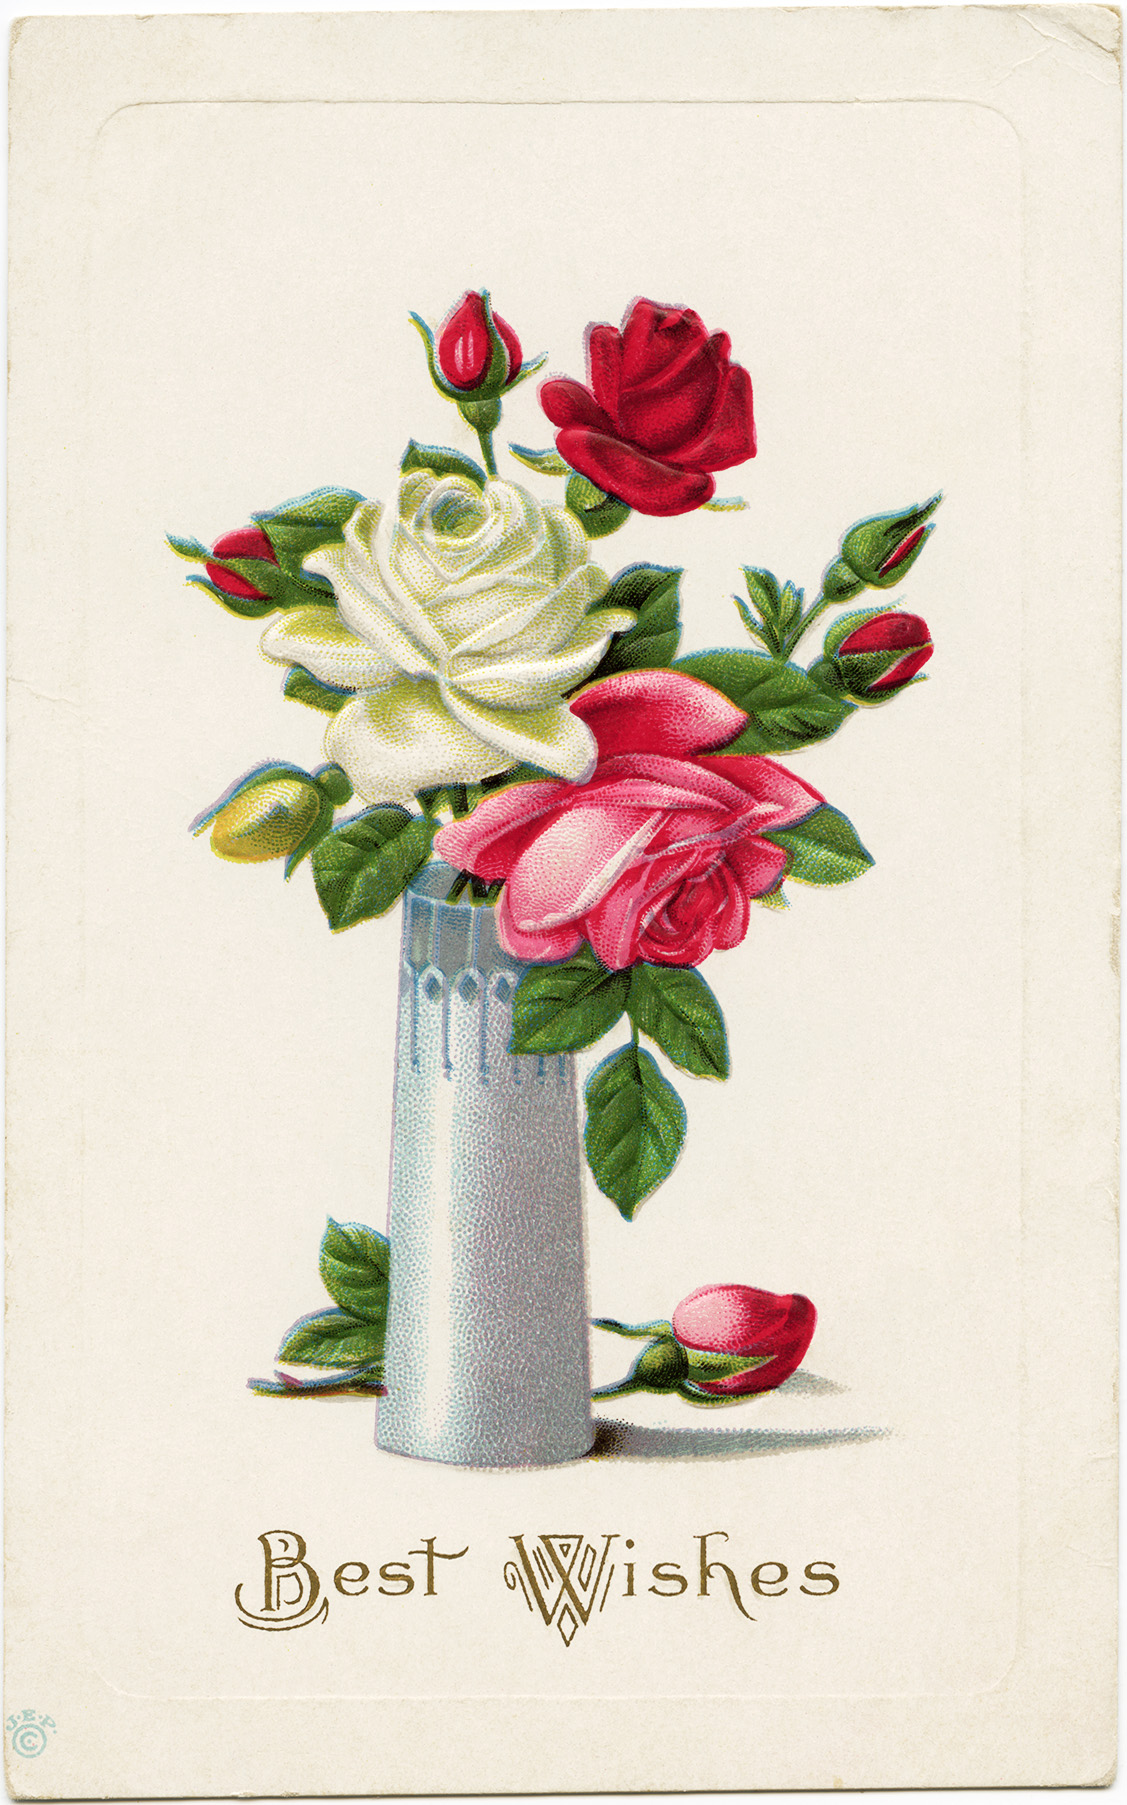 vintage postcard roses, printable rose card, roses in vase image, old postcard flowers, red pink rose clipart, vintage ephemera free